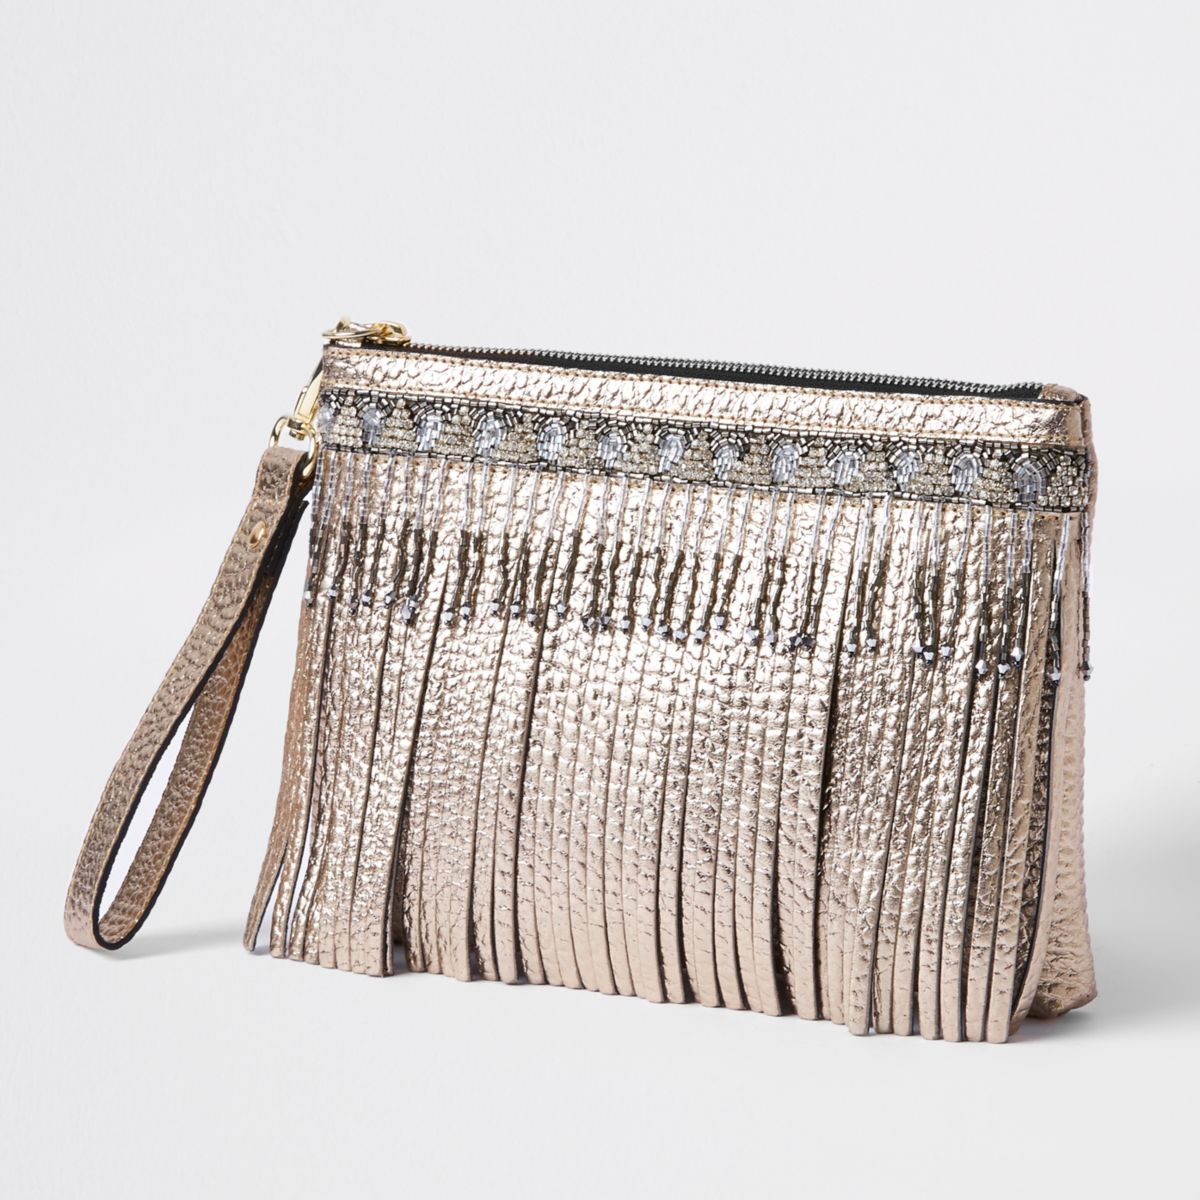 Gold metallic leather fringe clutch bag